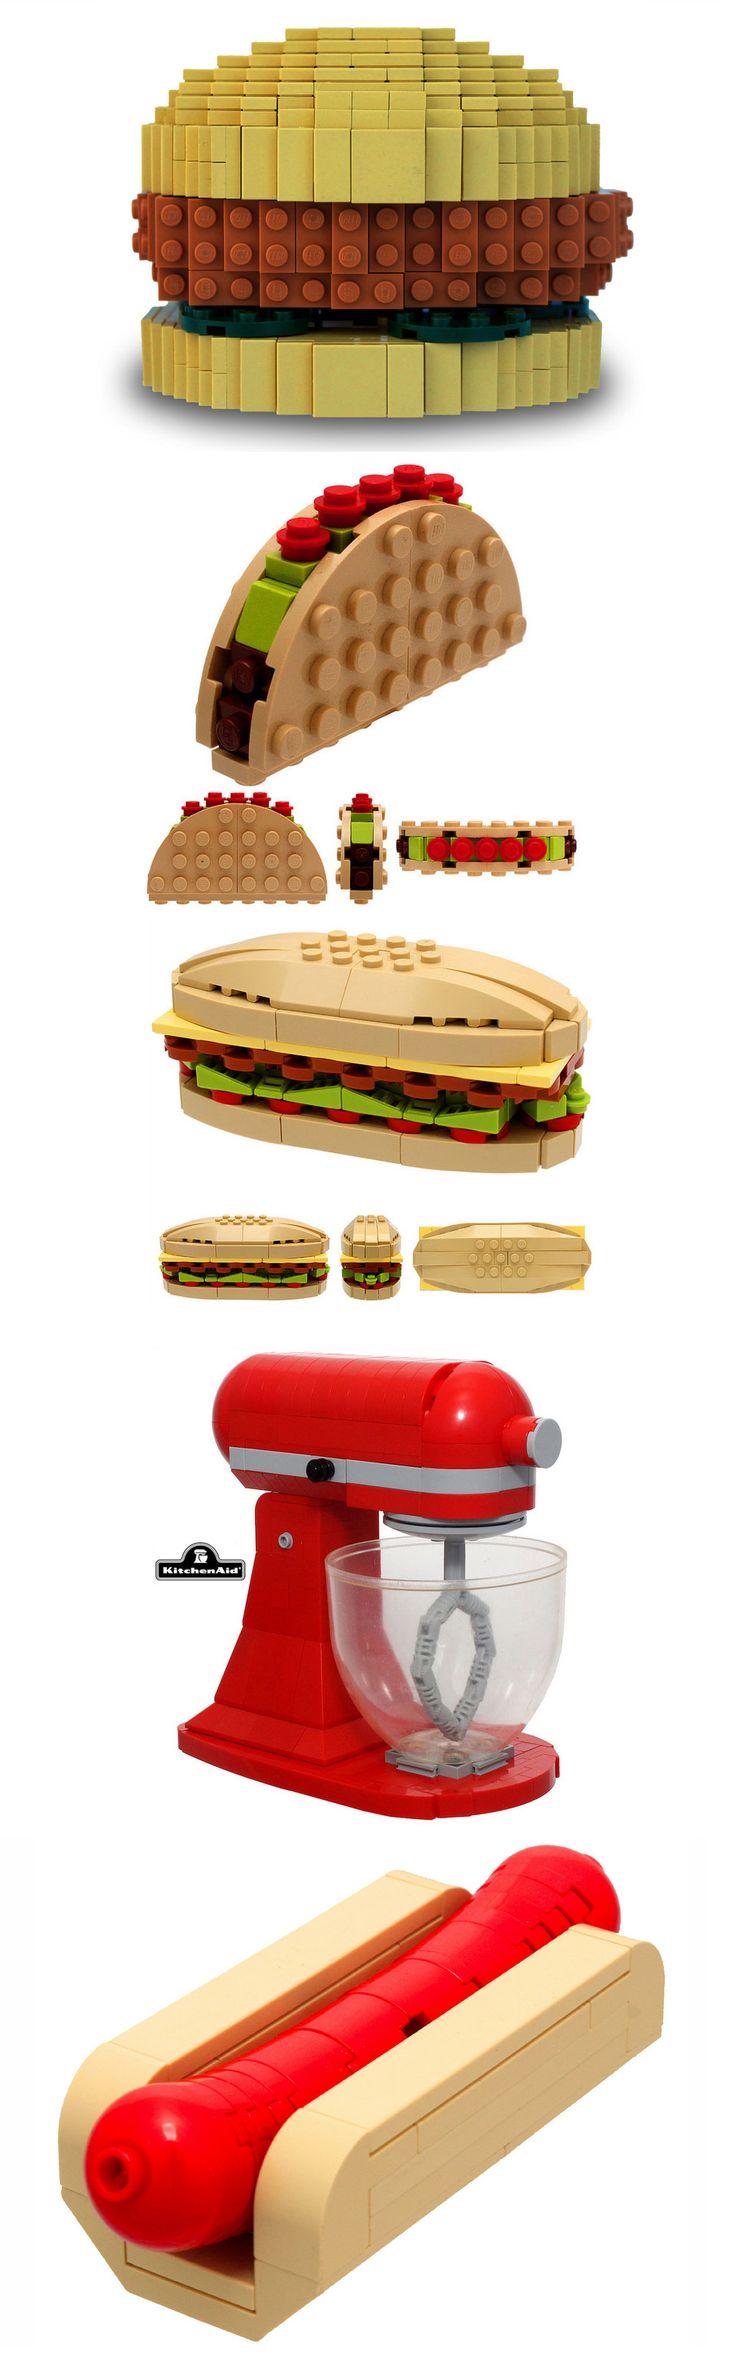 "Bruce Lowell ""lego's food"""